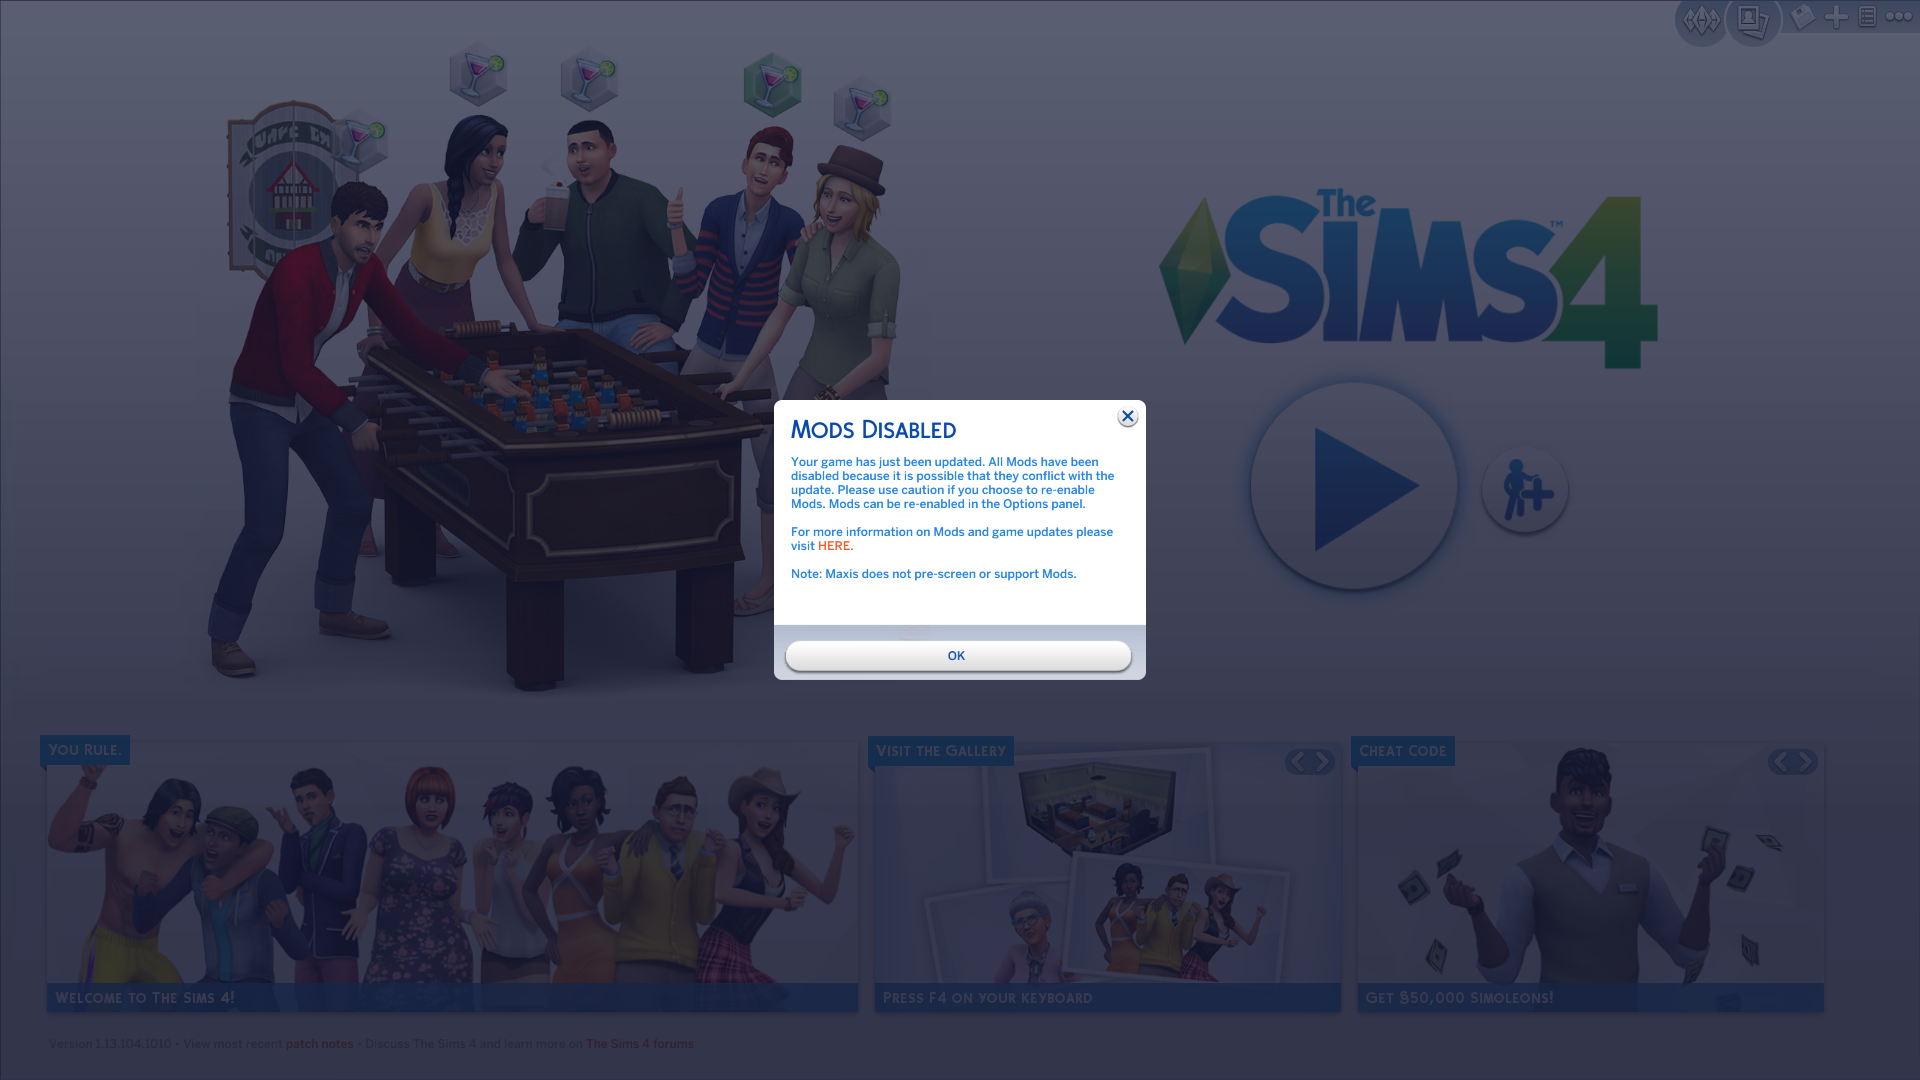 The Sims 4: Mods and Custom Content Auto-Disabled With New Game